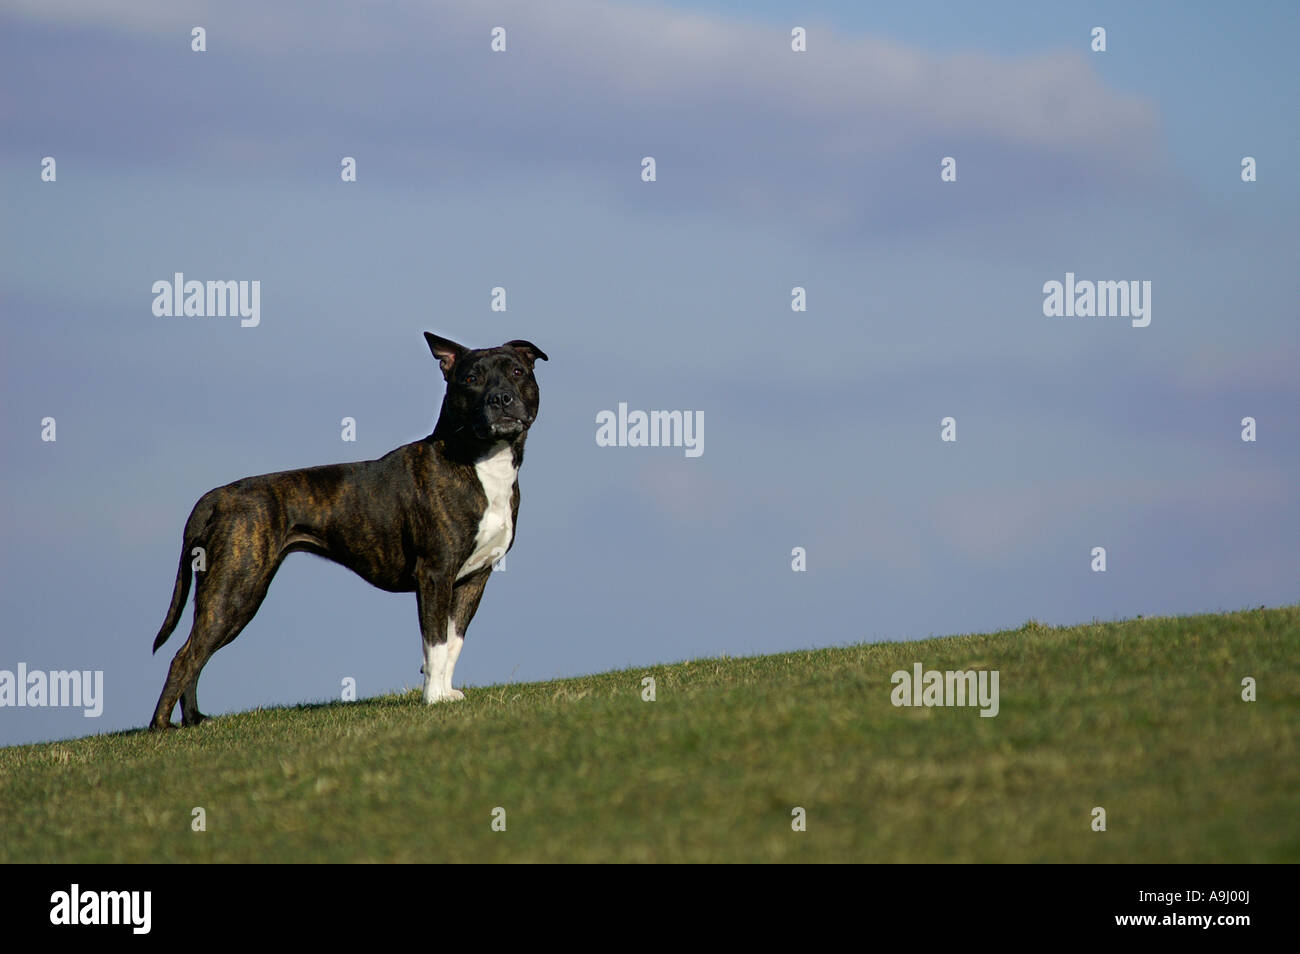 American Staffordshire Terrier Pitbull side - Stock Image